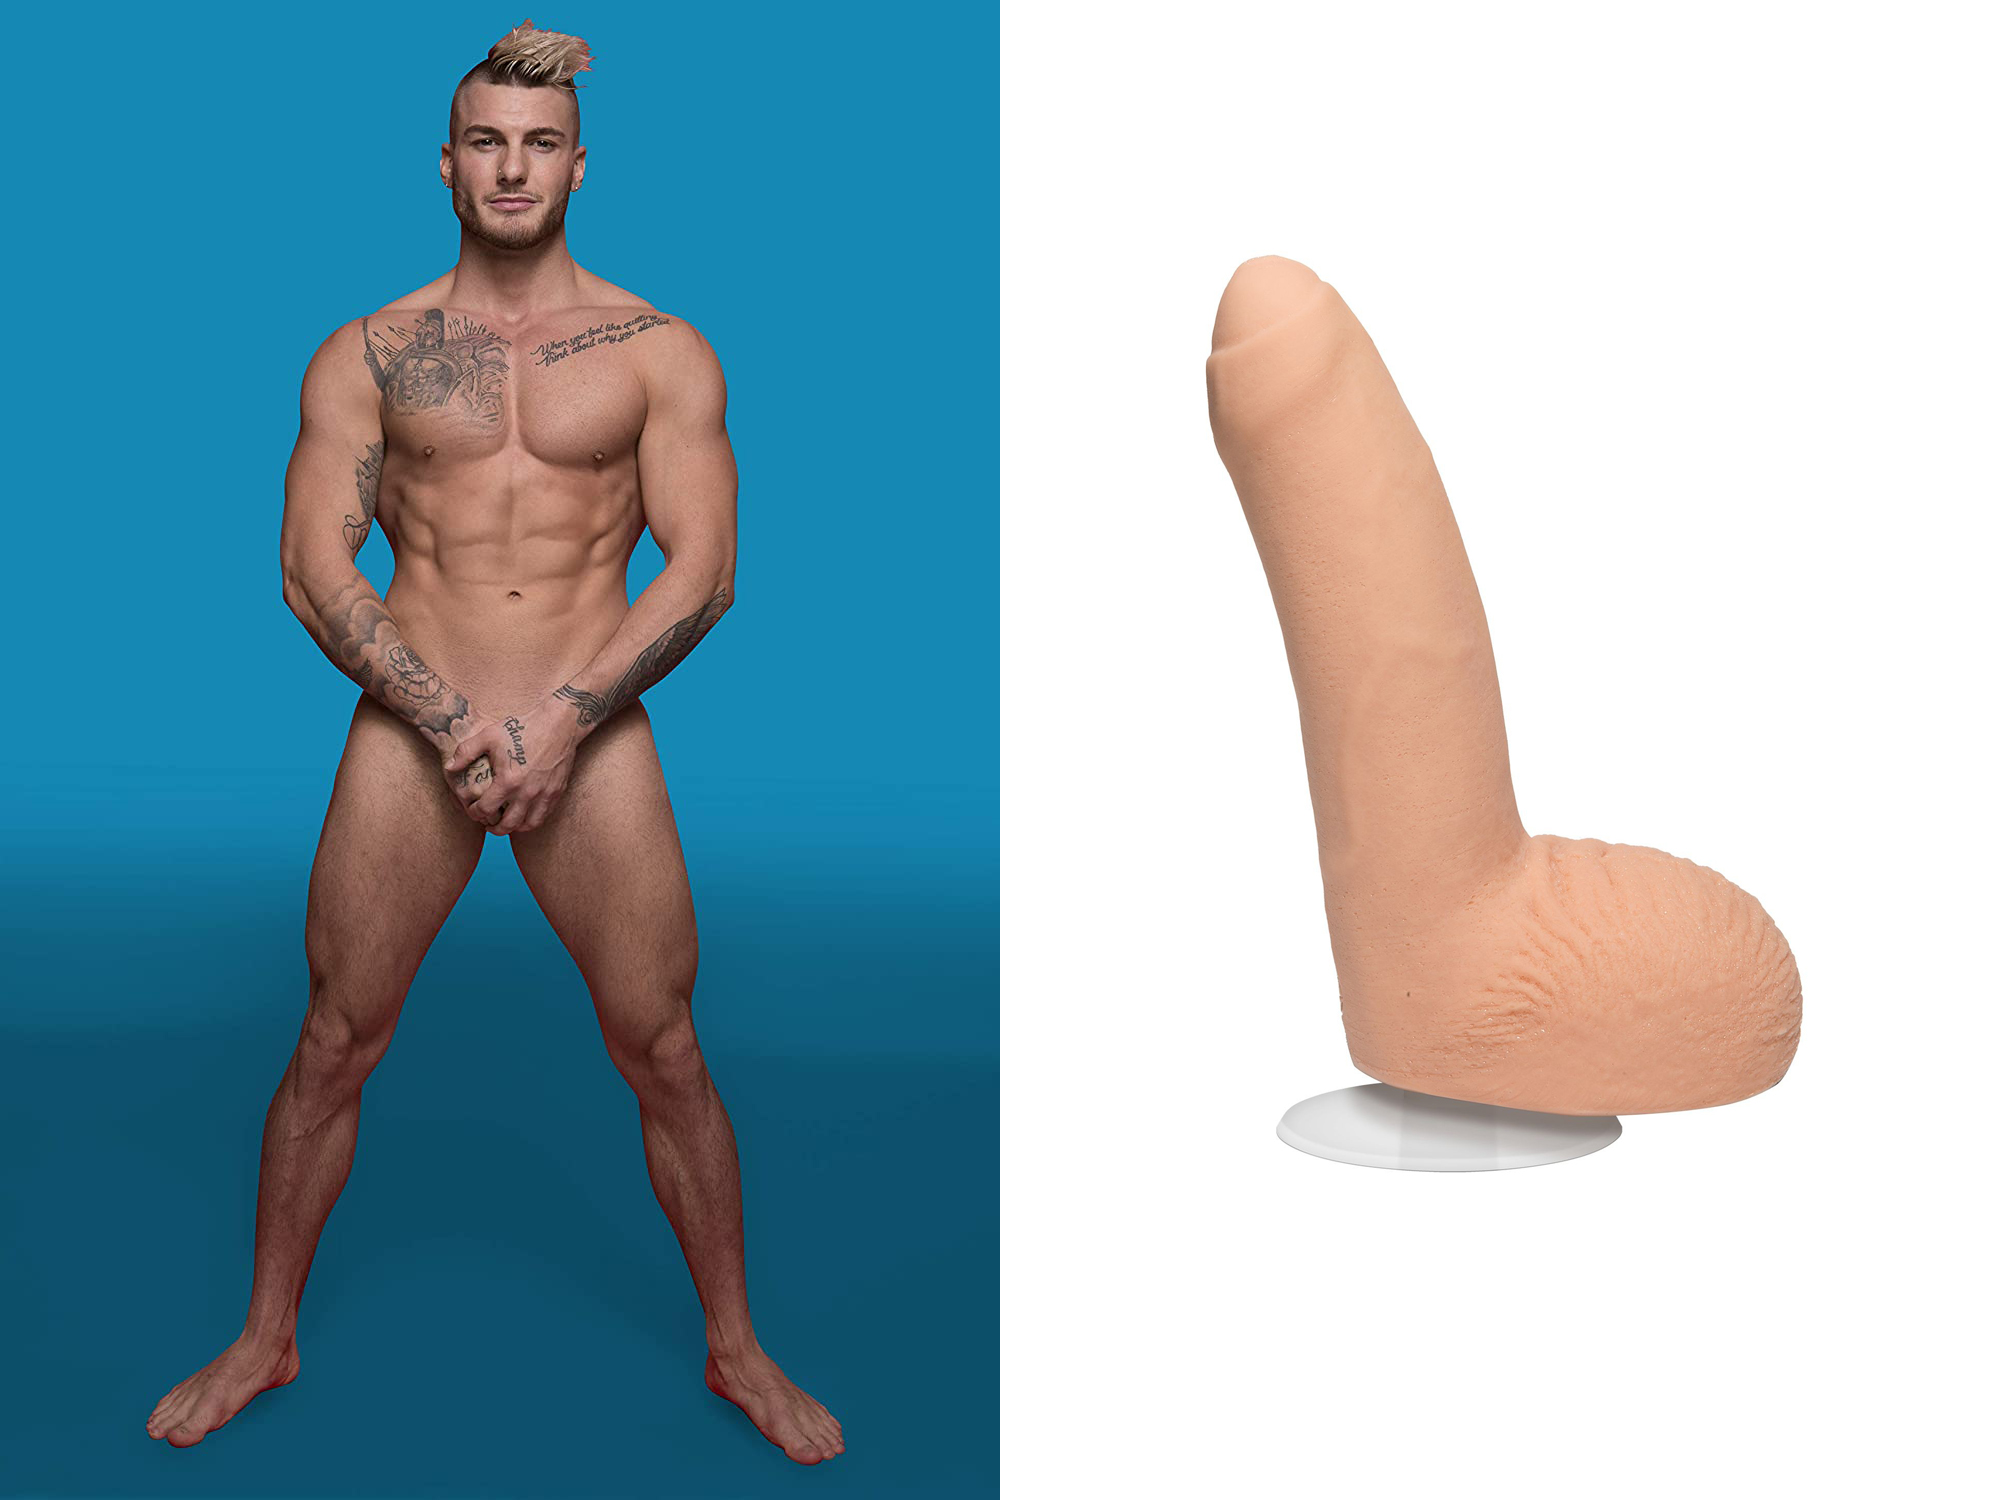 comprar-dildo-william-seed-actor-porno-gay